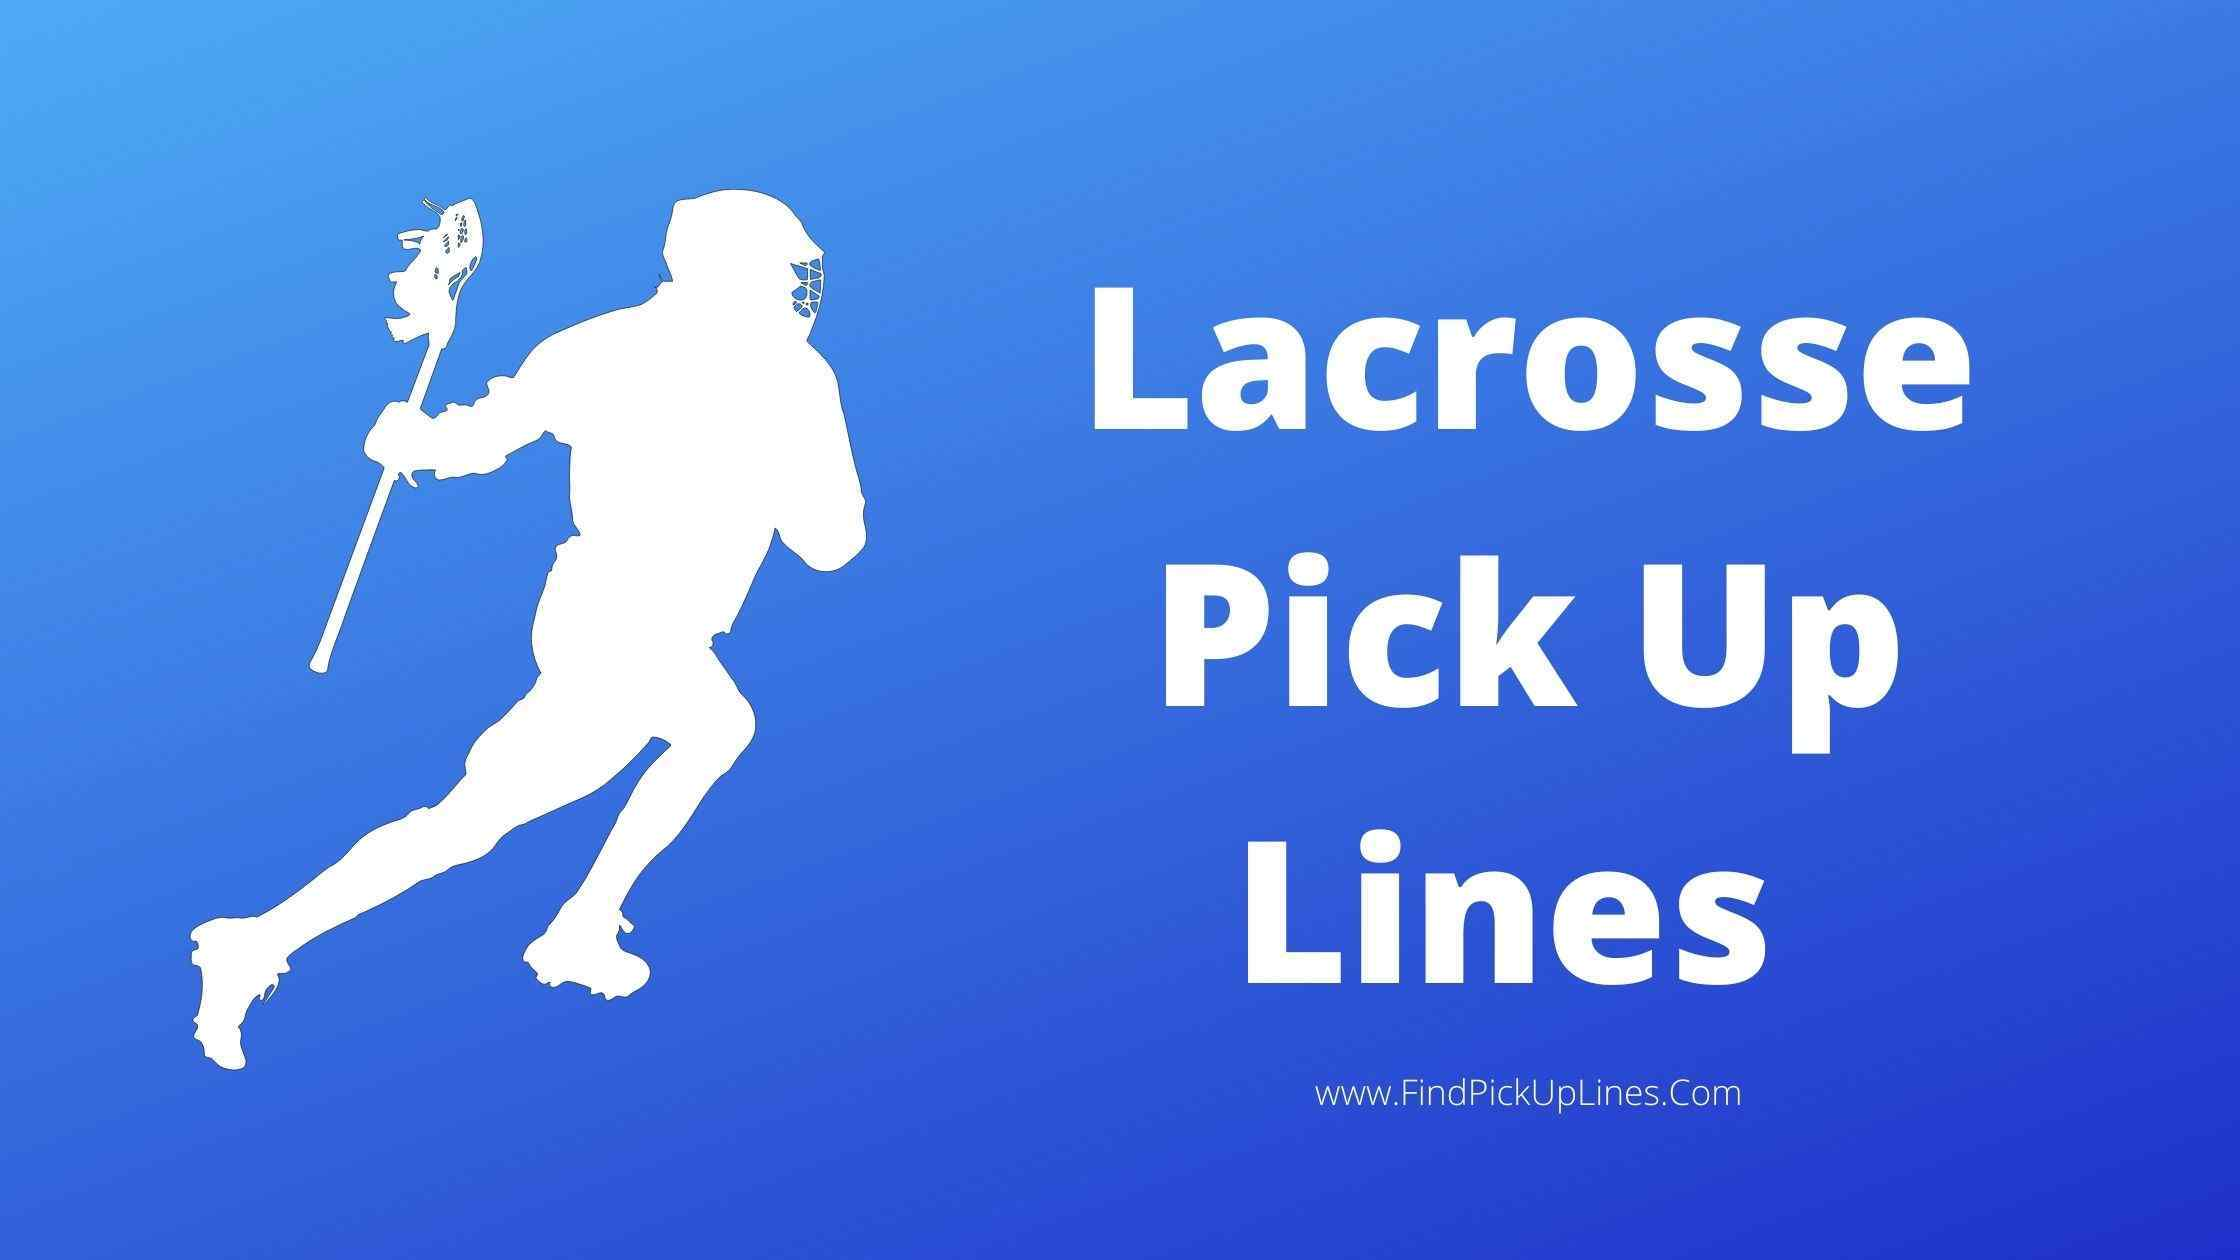 Lacrosse Pick Up Lines